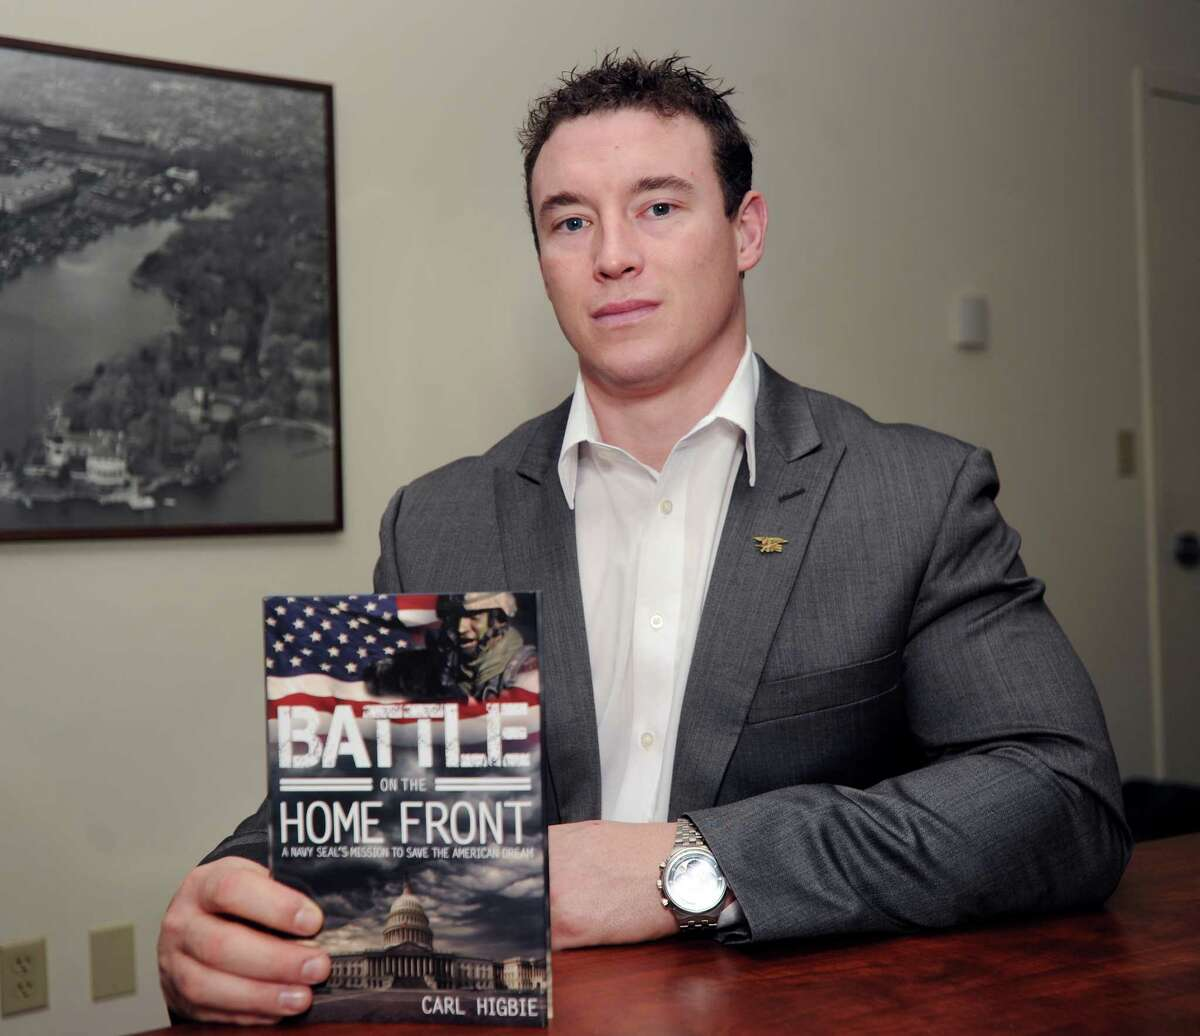 """Holding his book """"Battle on the Home Front,"""" Carl Higbie, a former Navy SEAL who did two tours of duty in Iraq, at the office of the Greenwich Time, Greenwich, Conn., Tuesday, Jab. 14, 2014. Higbie, a Greenwich resident, is running for Congress in the 4th District as a Republican."""